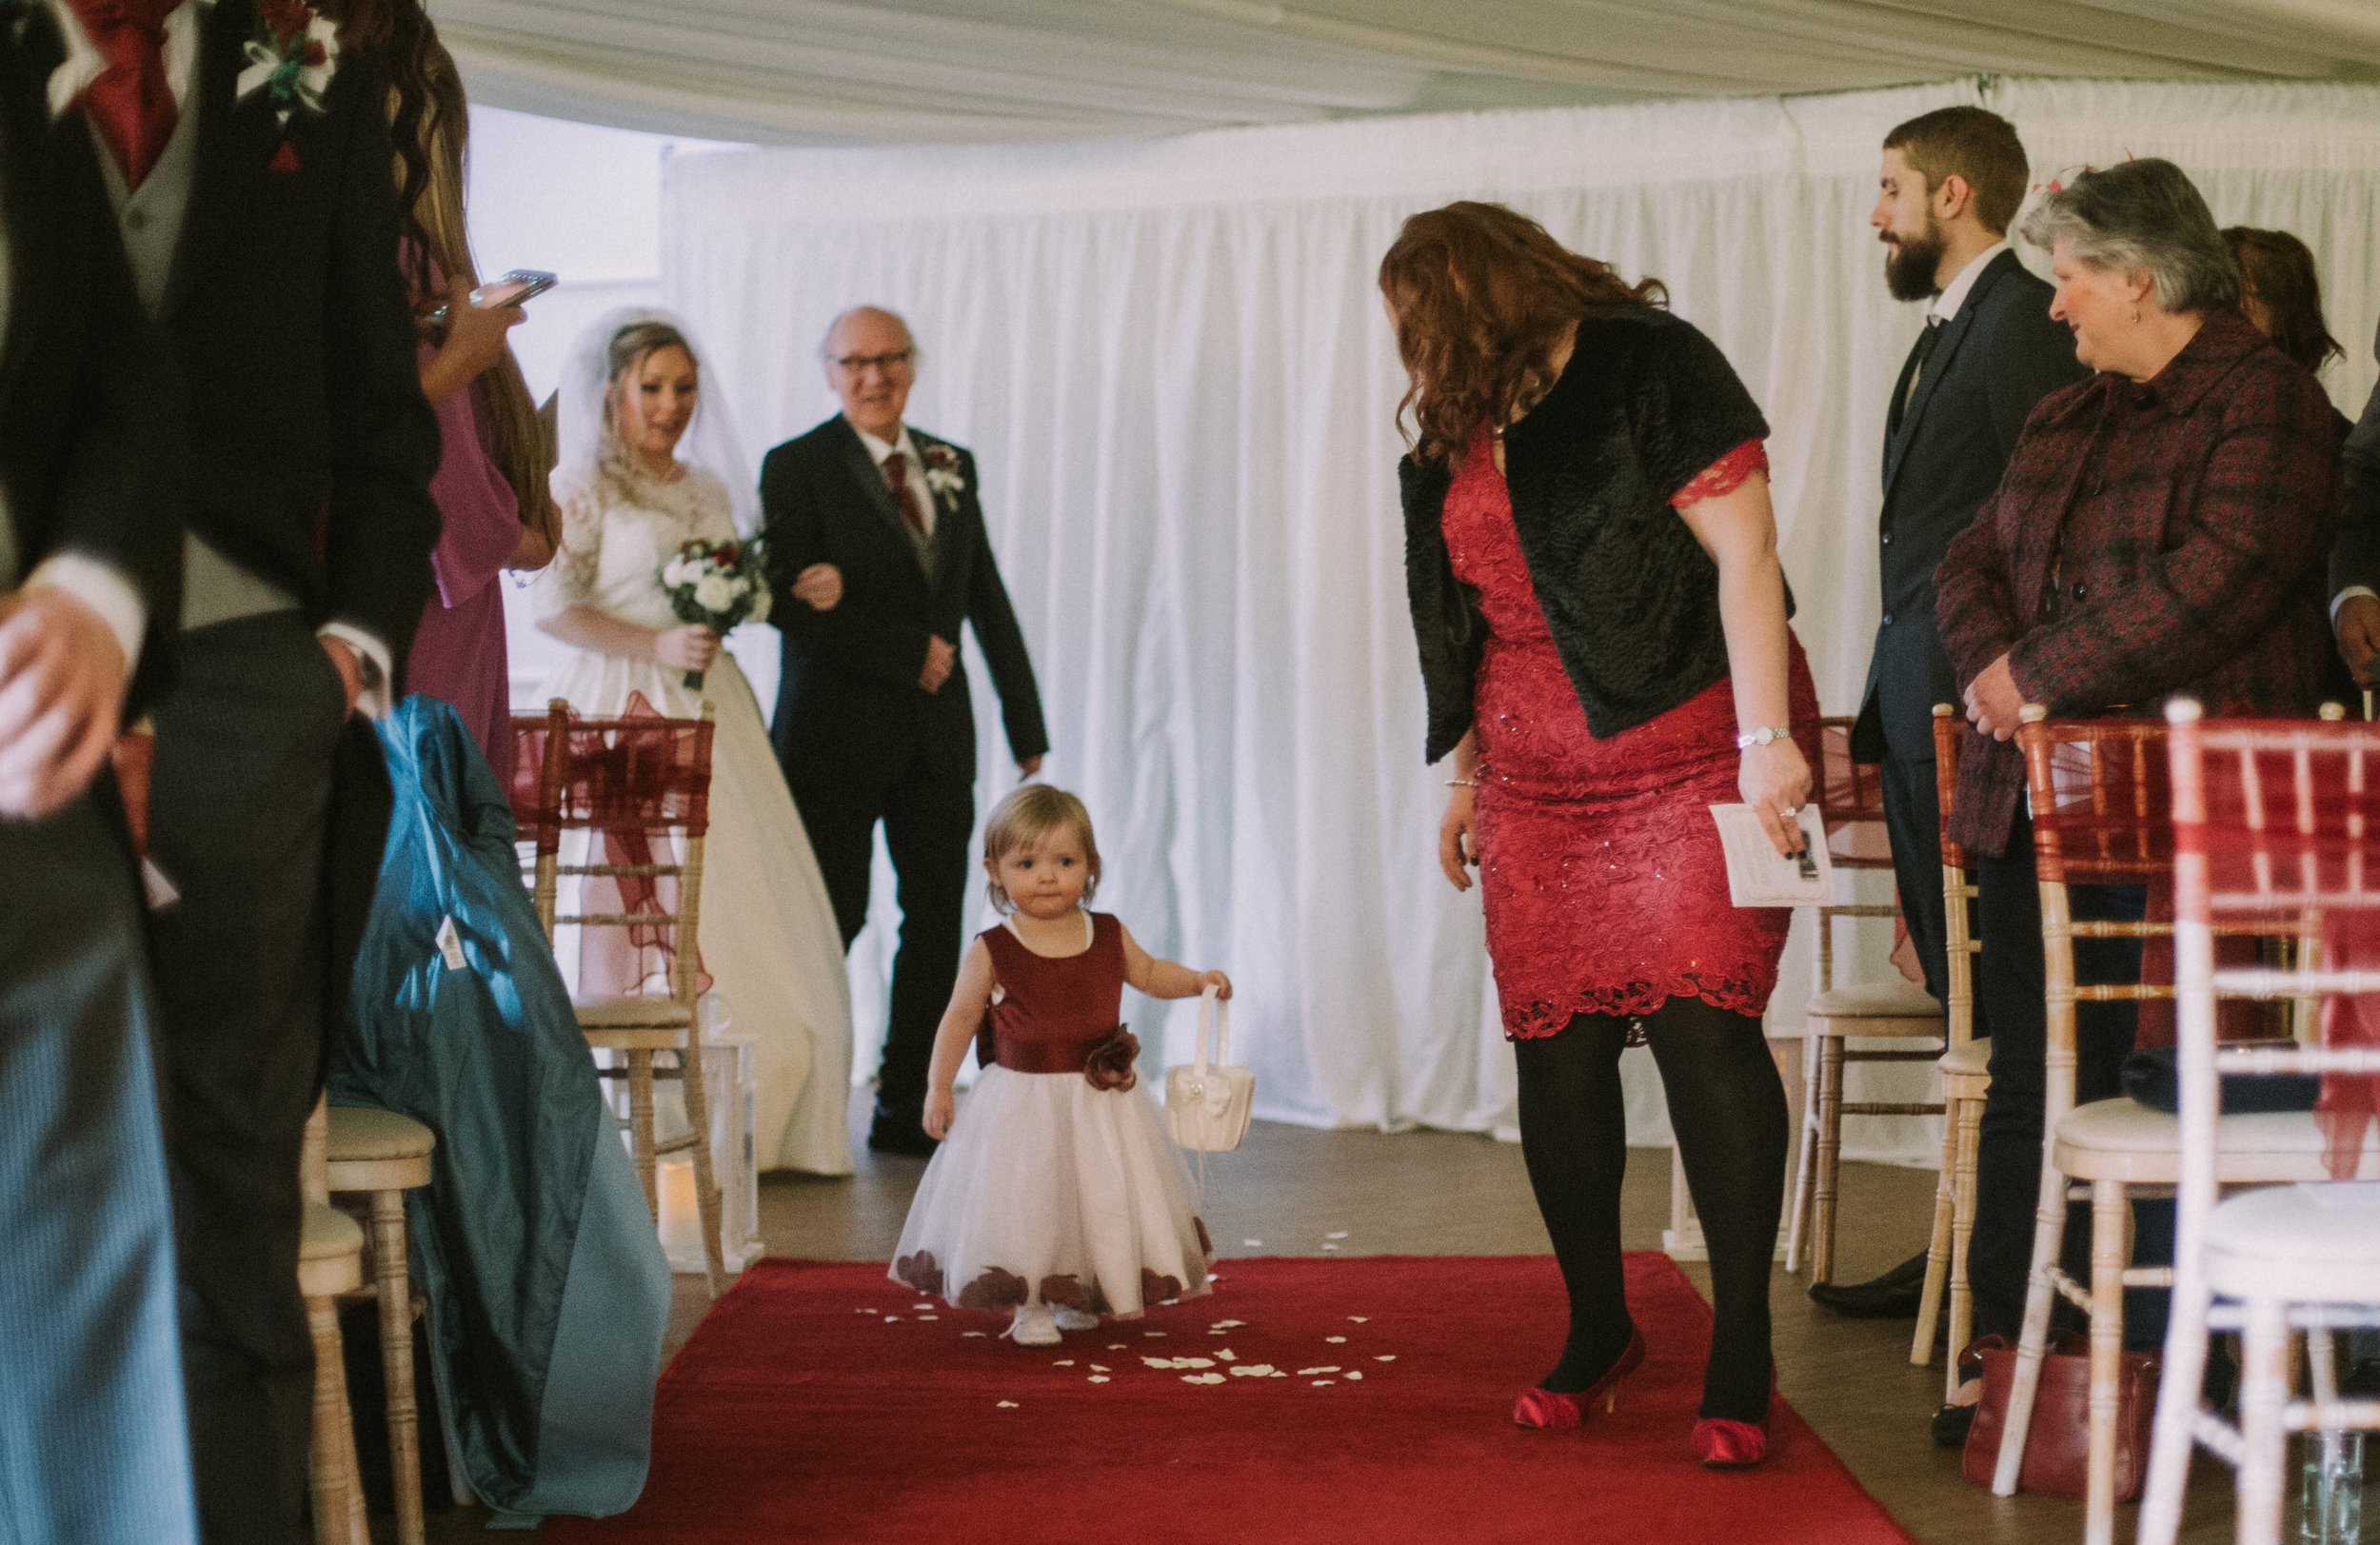 southdowns-manor-wedding-sussex-hampshire-photography-ceremony-108